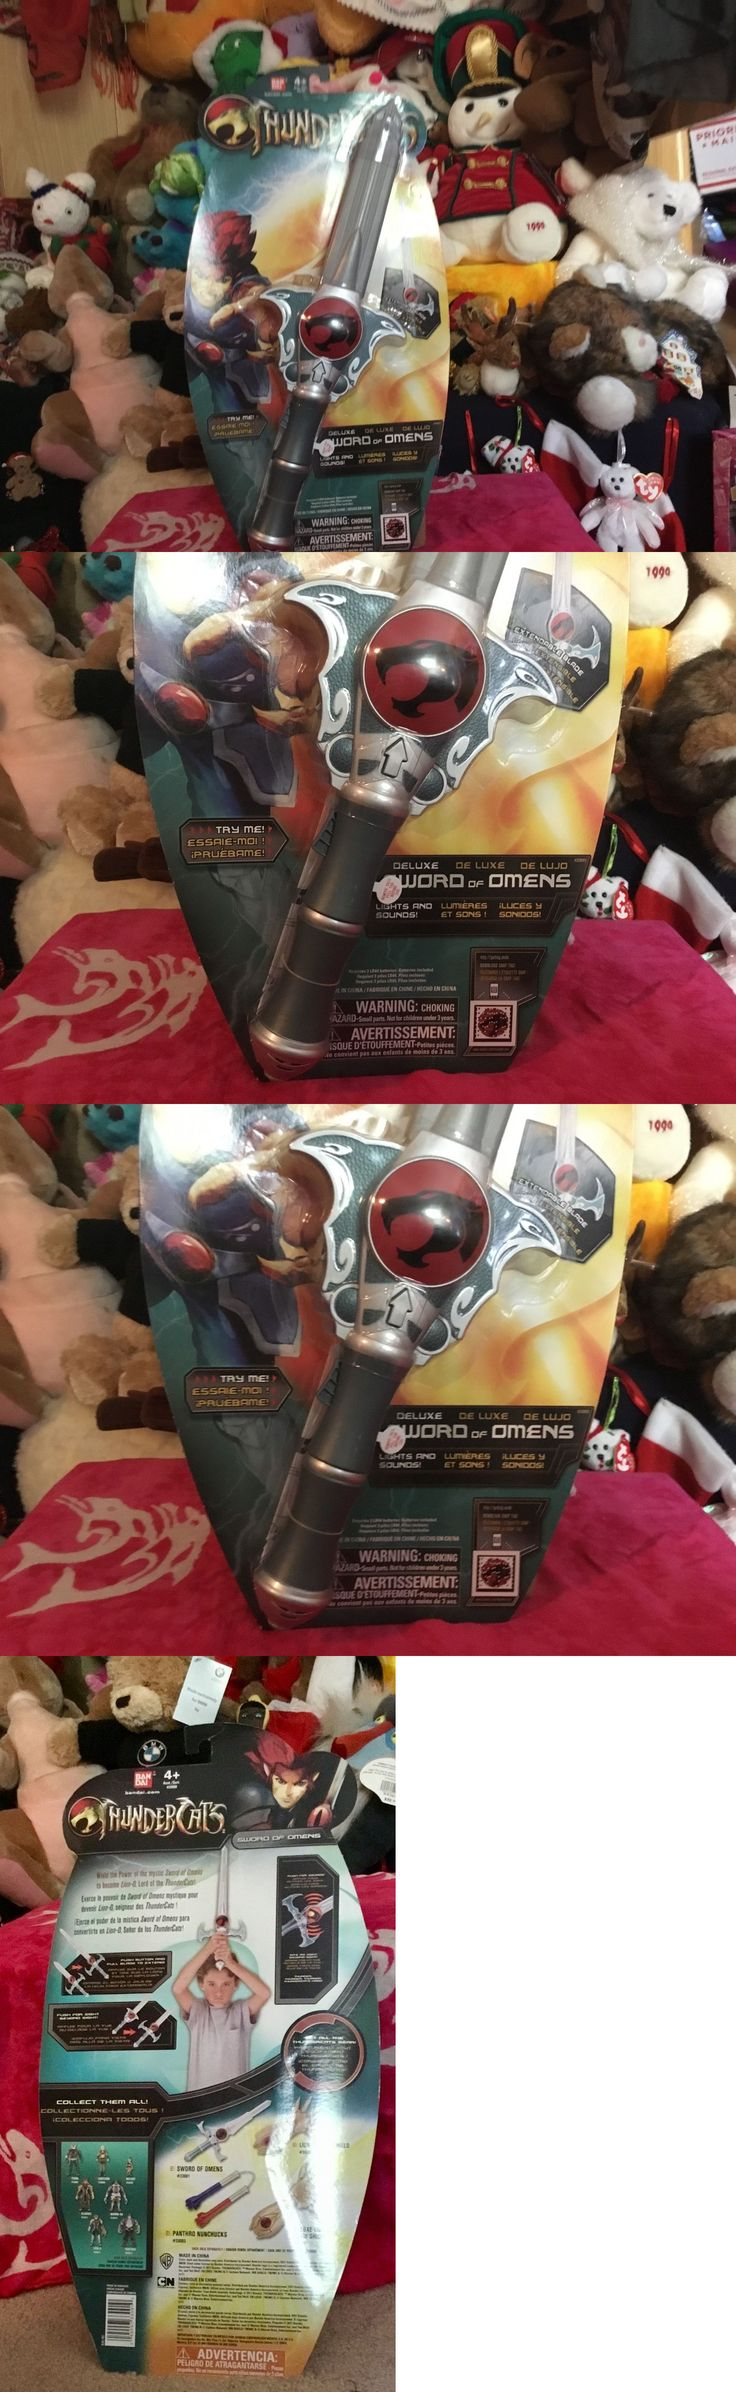 Other TV Movie Character Toys 2622: Thundercats Sword Of Omens Deluxe New Bandai Lights Sounds 25 Blade Roleplay -> BUY IT NOW ONLY: $32 on eBay!